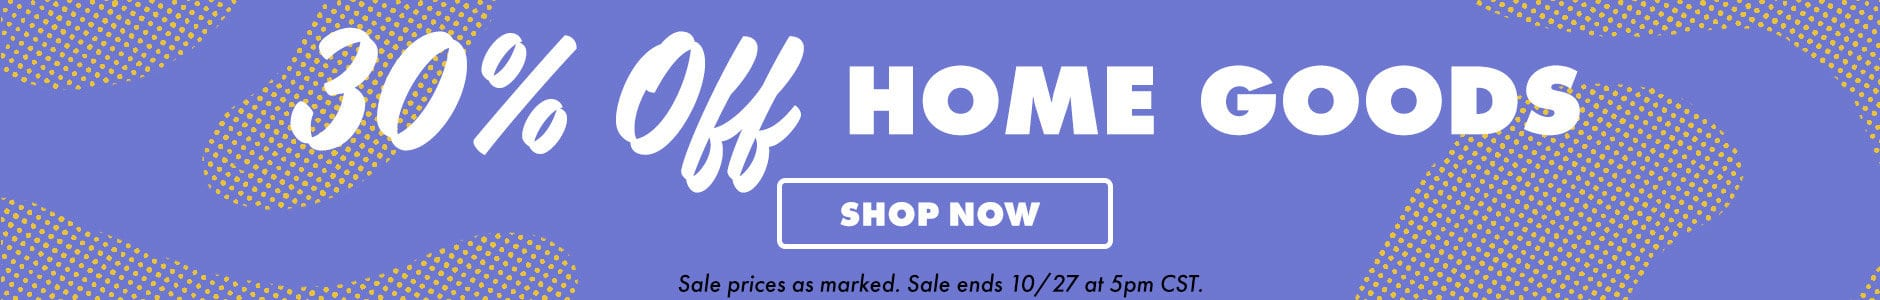 30% off Home Goods. Shop now. Sale prices as marked. Sale ends 10/27 at 5PM CST.